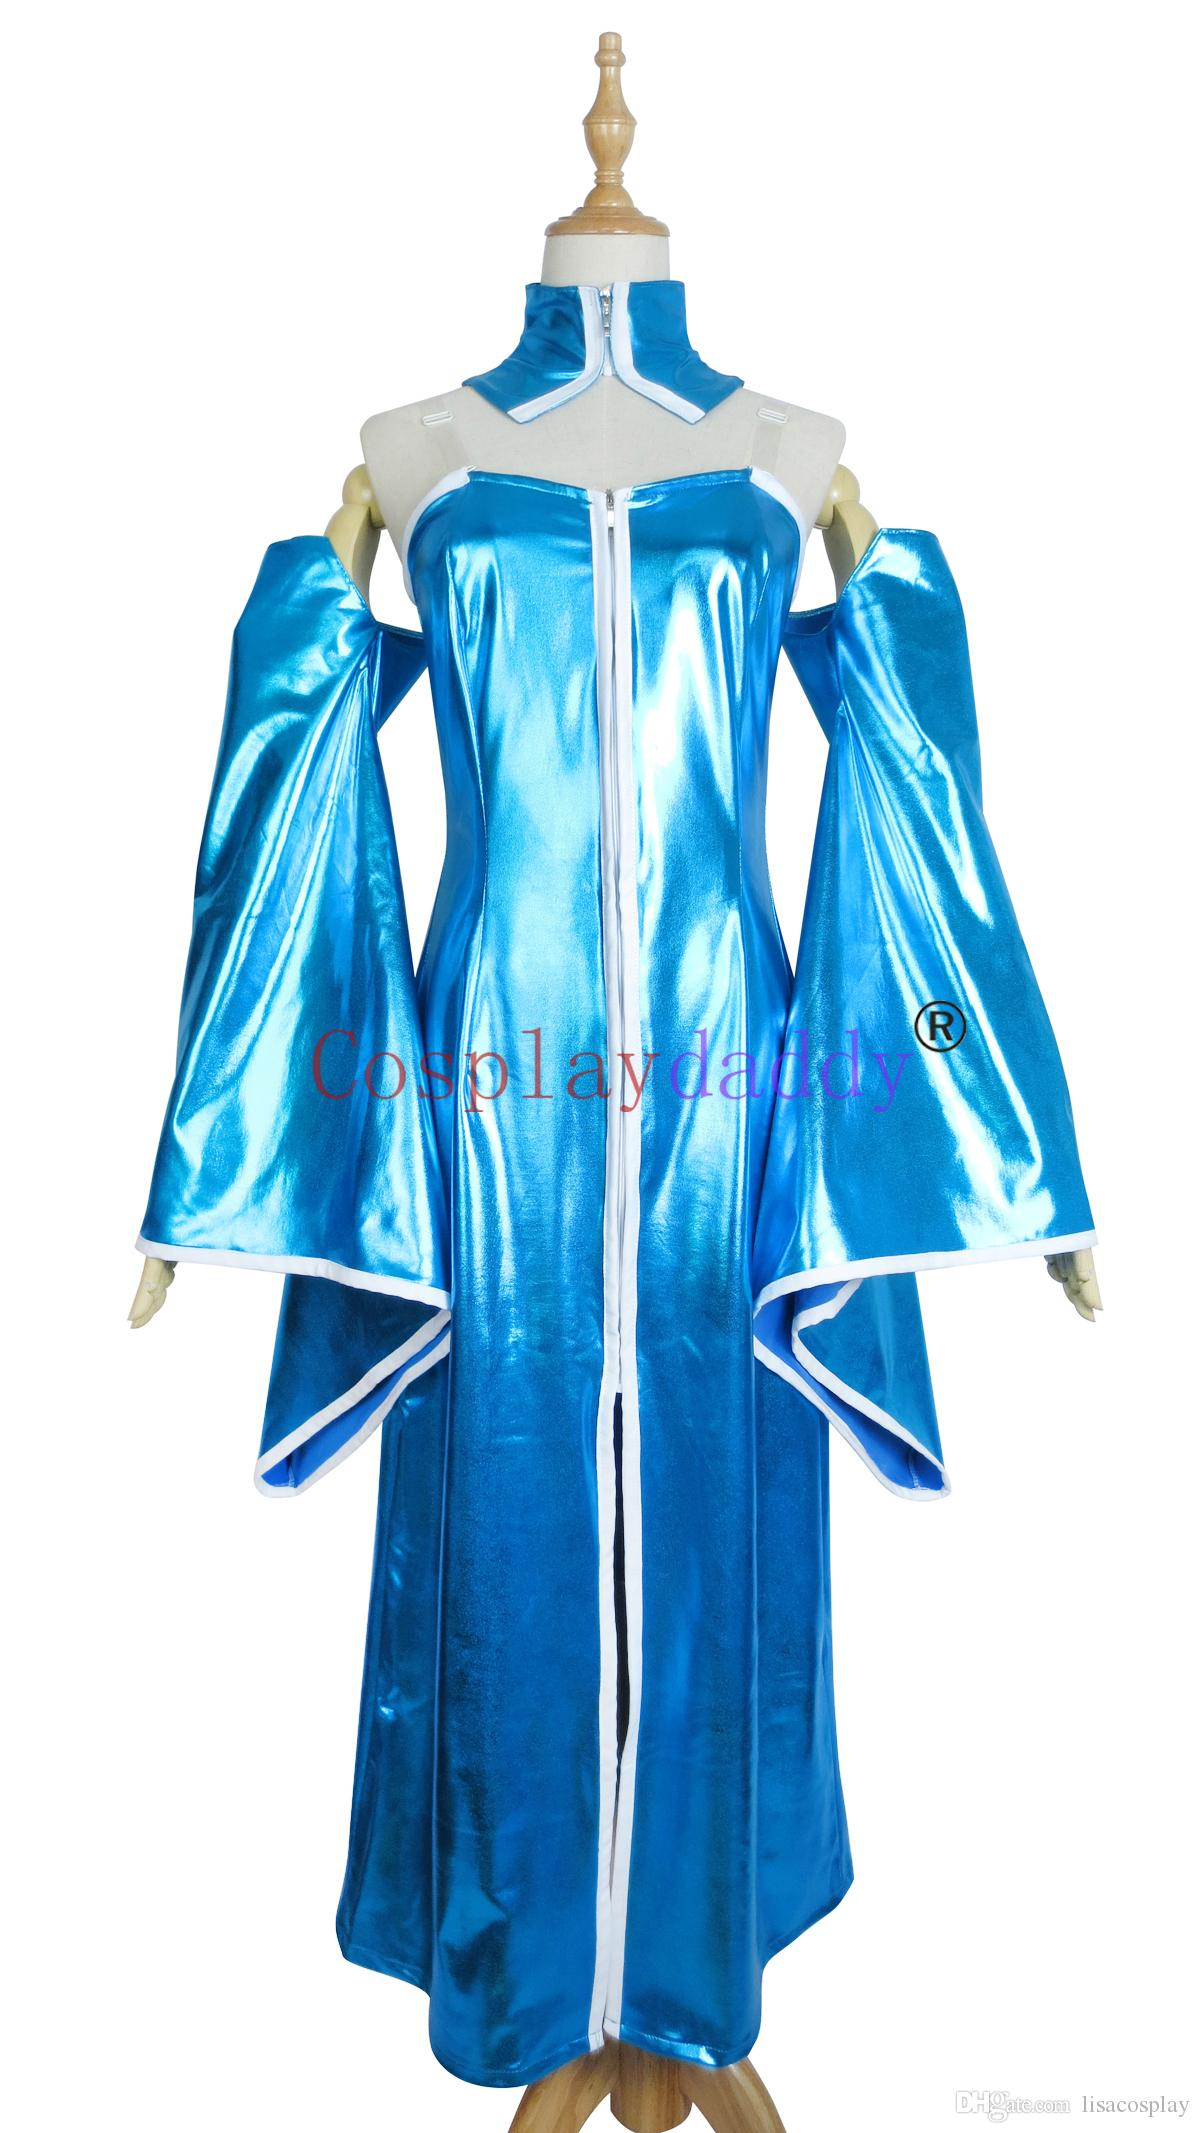 Mobile Suit Gundam SEED Lacus Clyne Uniform COS Clothing Cosplay Costume